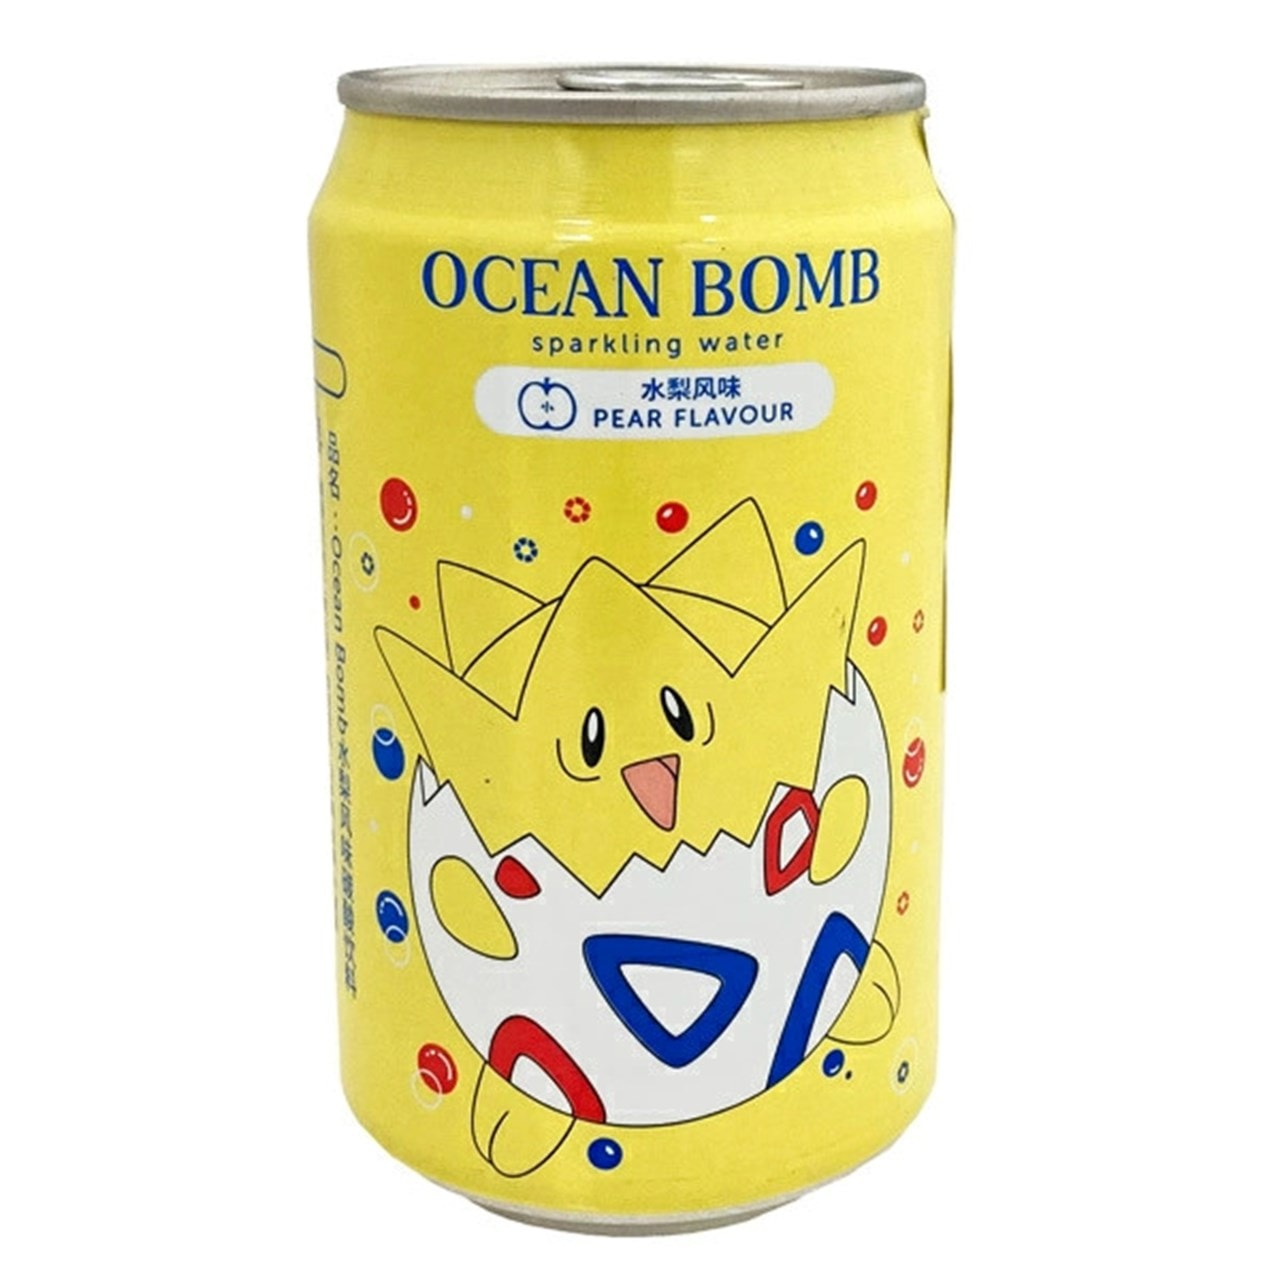 Pokemon (Togepi) Ocean Bomb: Pear Flavour Sparkling Water: Case Of 24 - 2